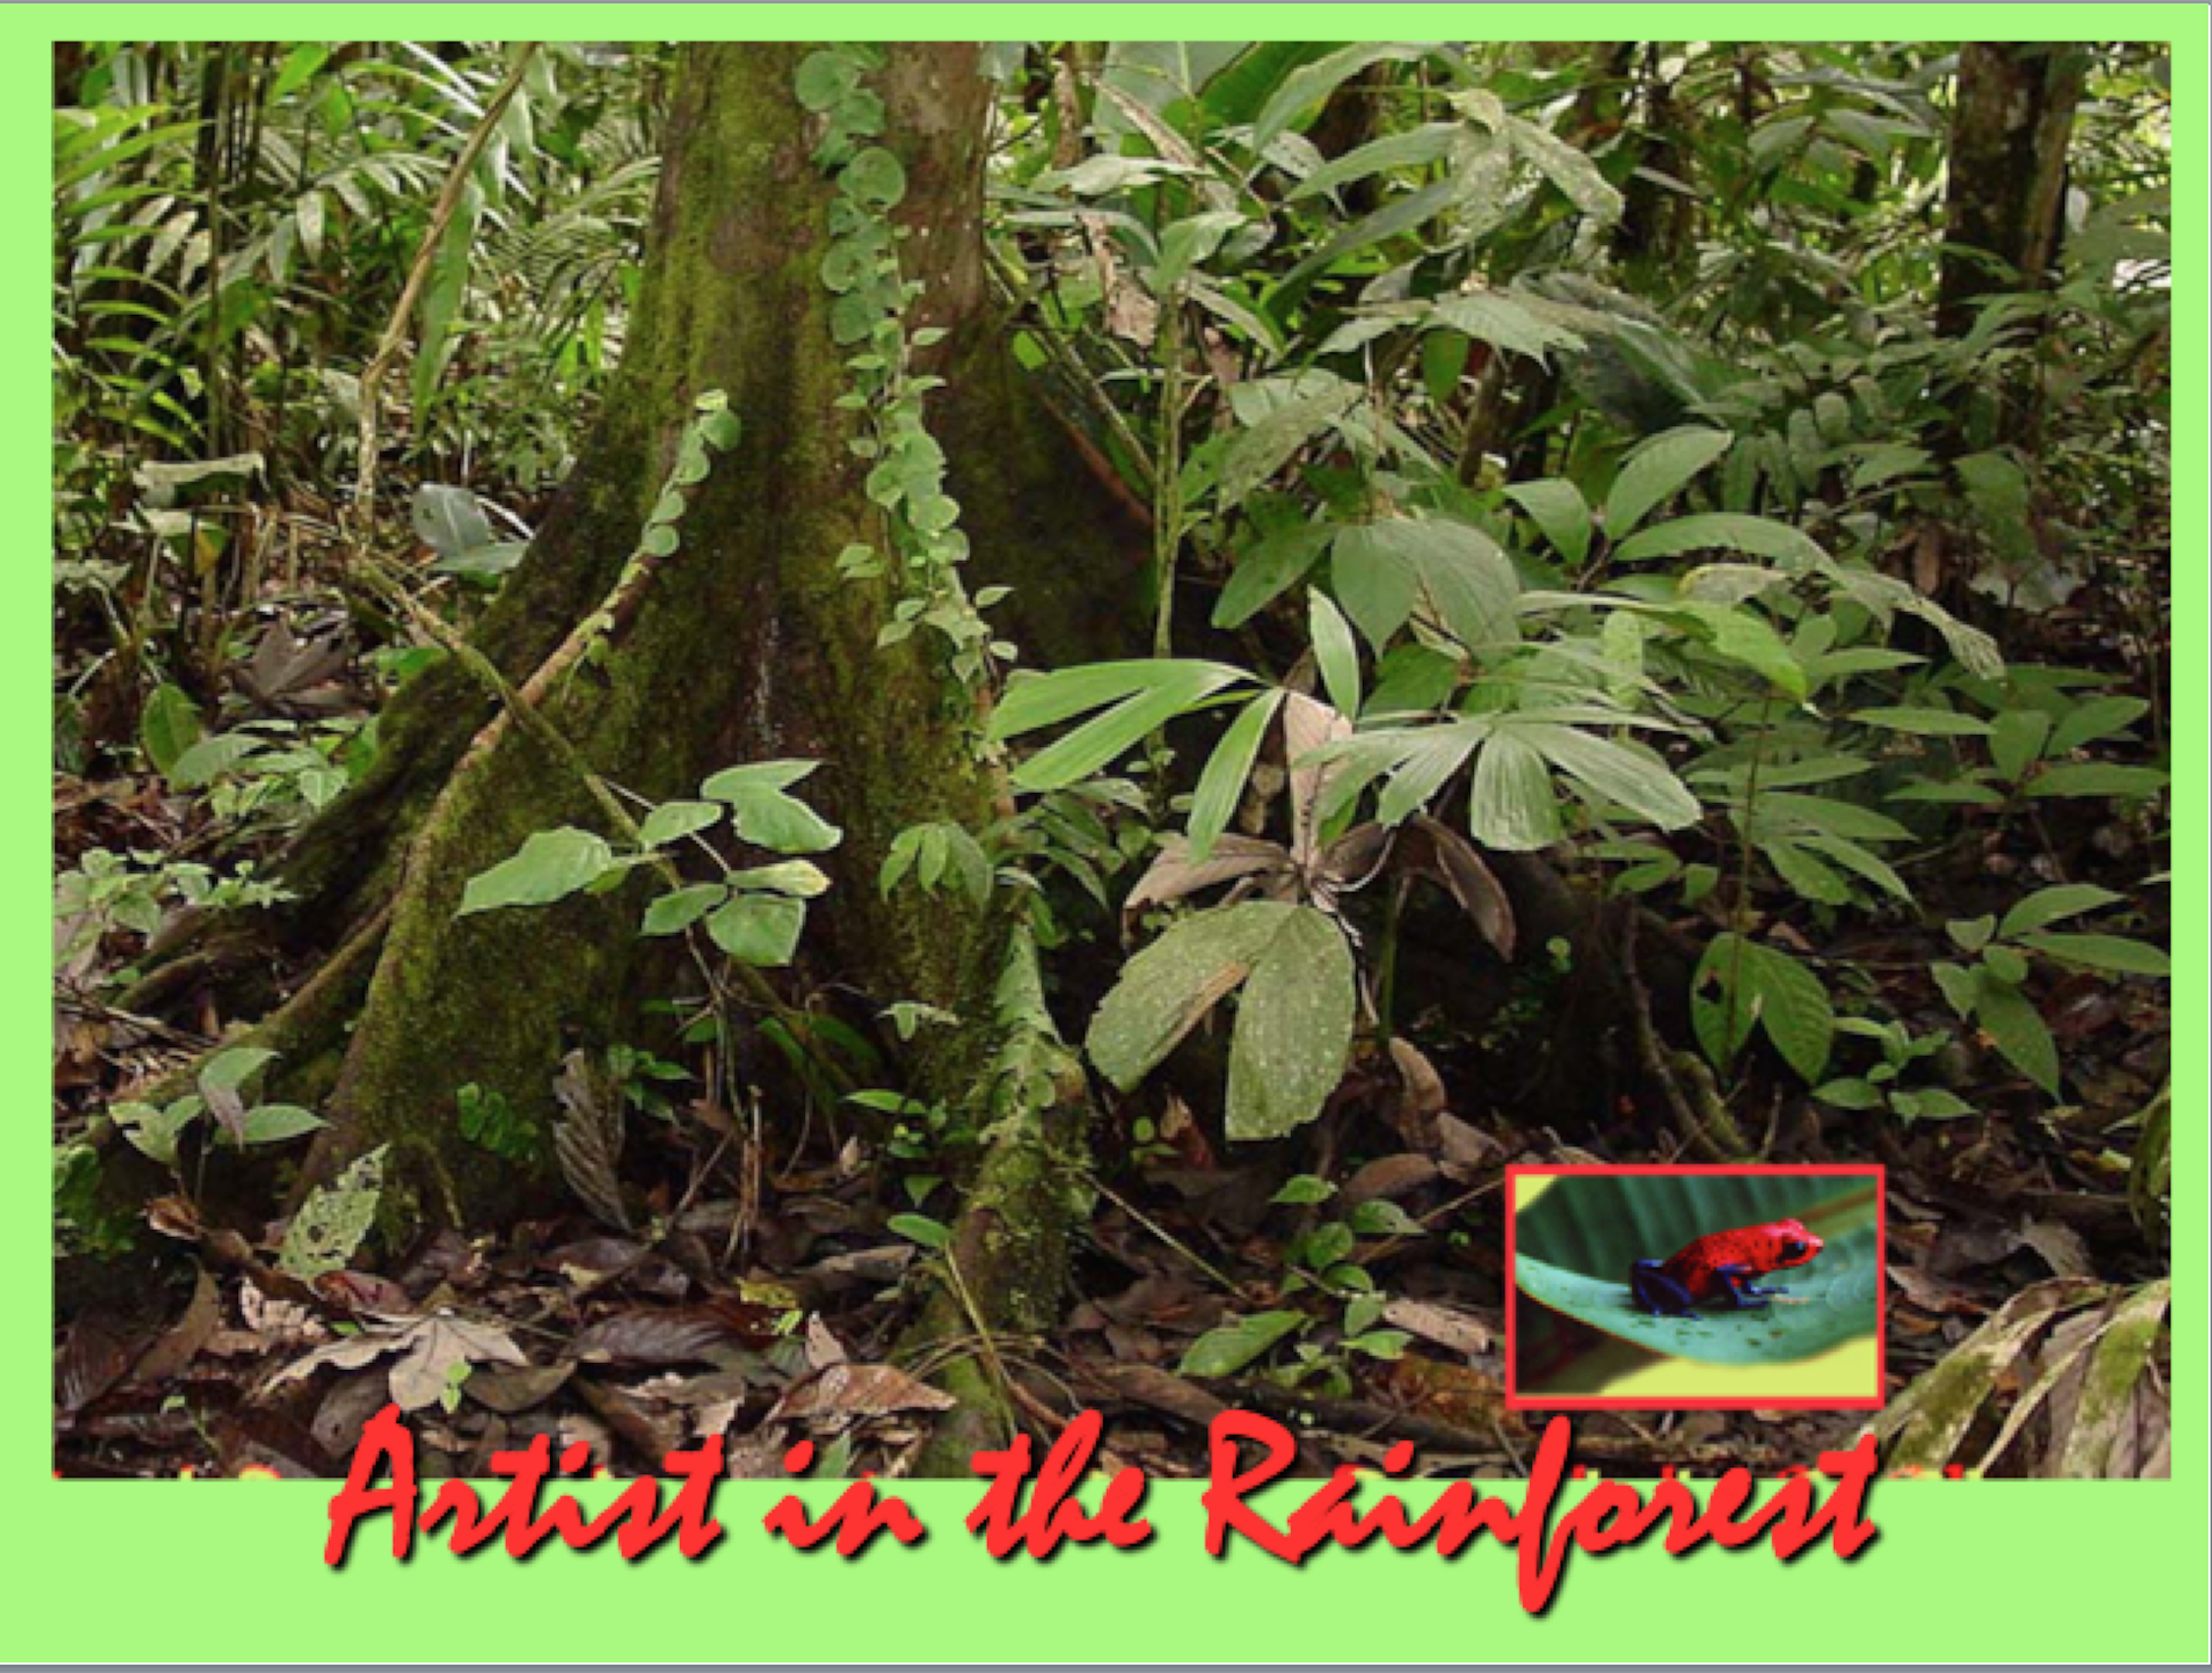 Artist in the Rainforest 2019-05-07 at 4.41.03 PM.png